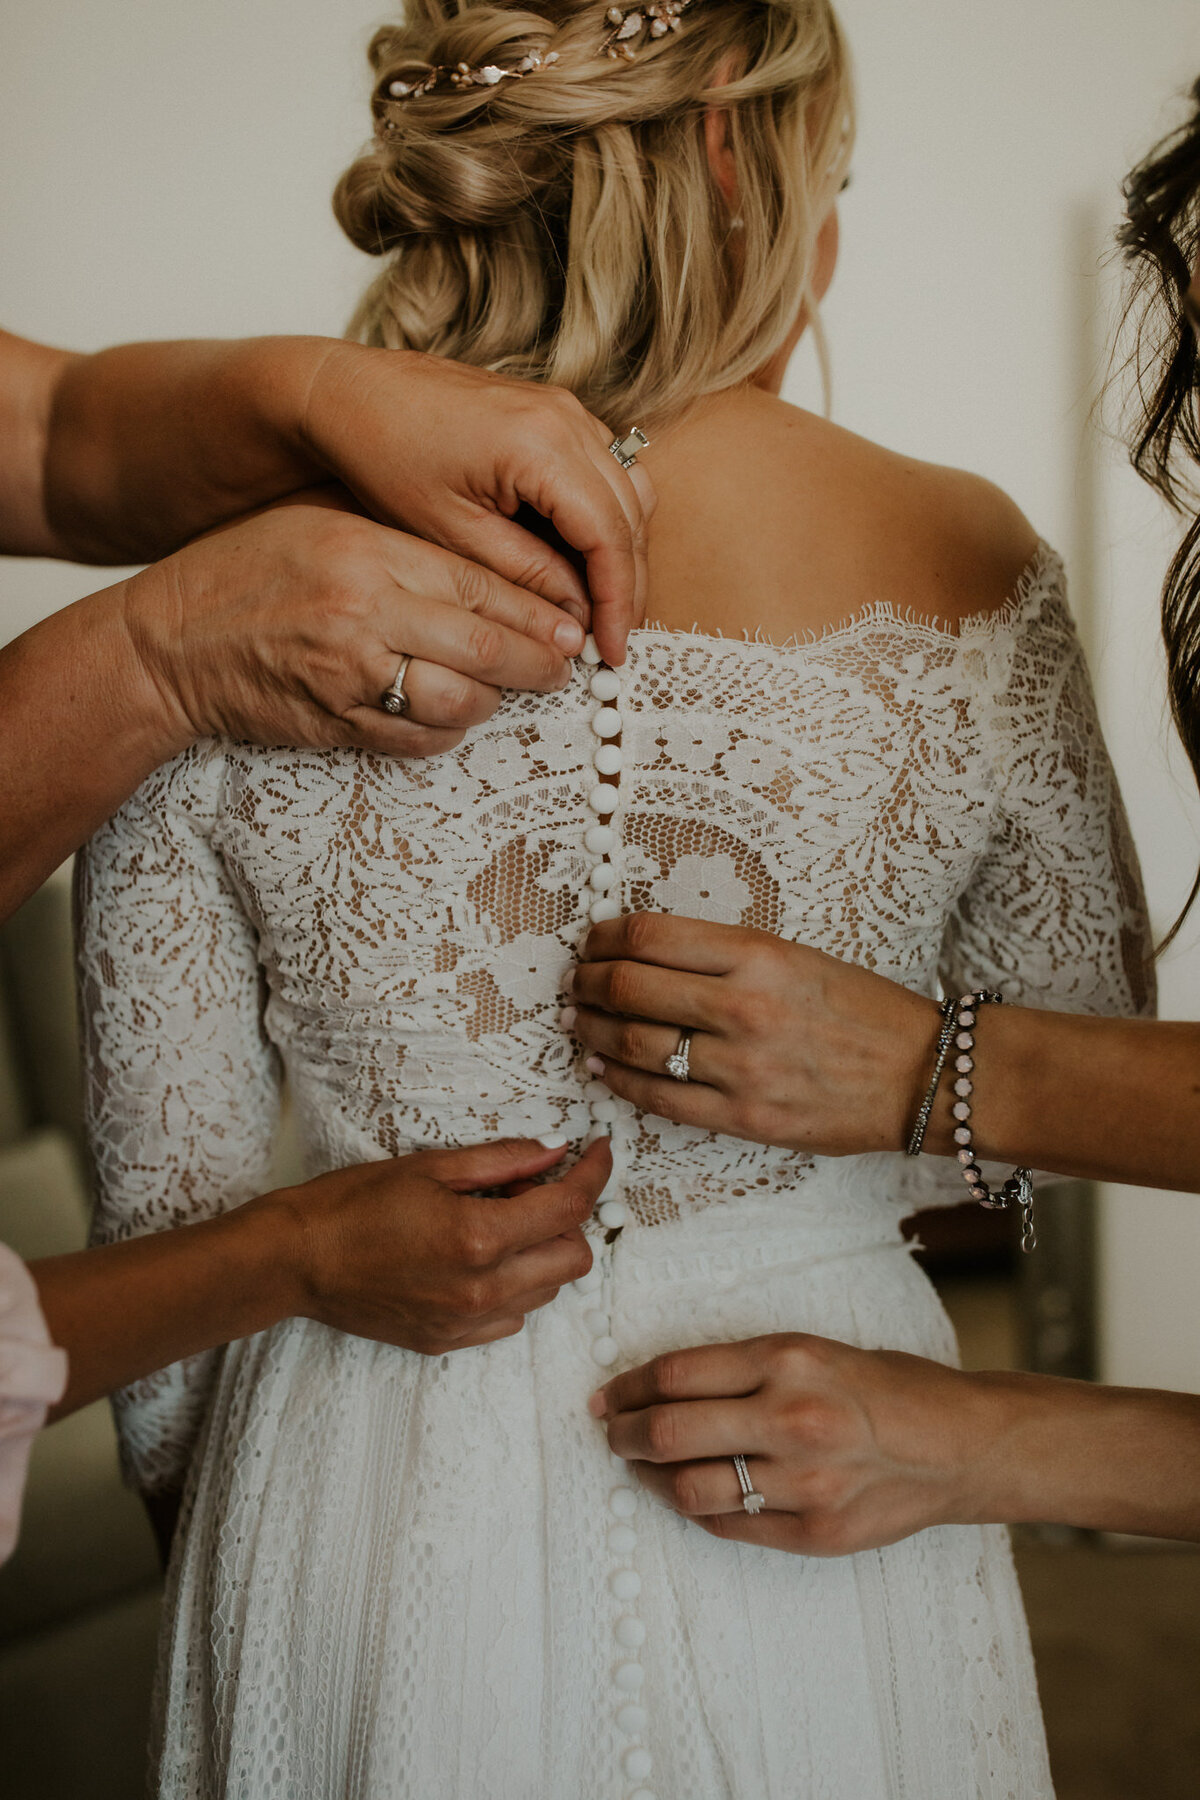 AutumnAgrella_www.autumnagrella.com_Sacramento_Wedding-0922 - Copy